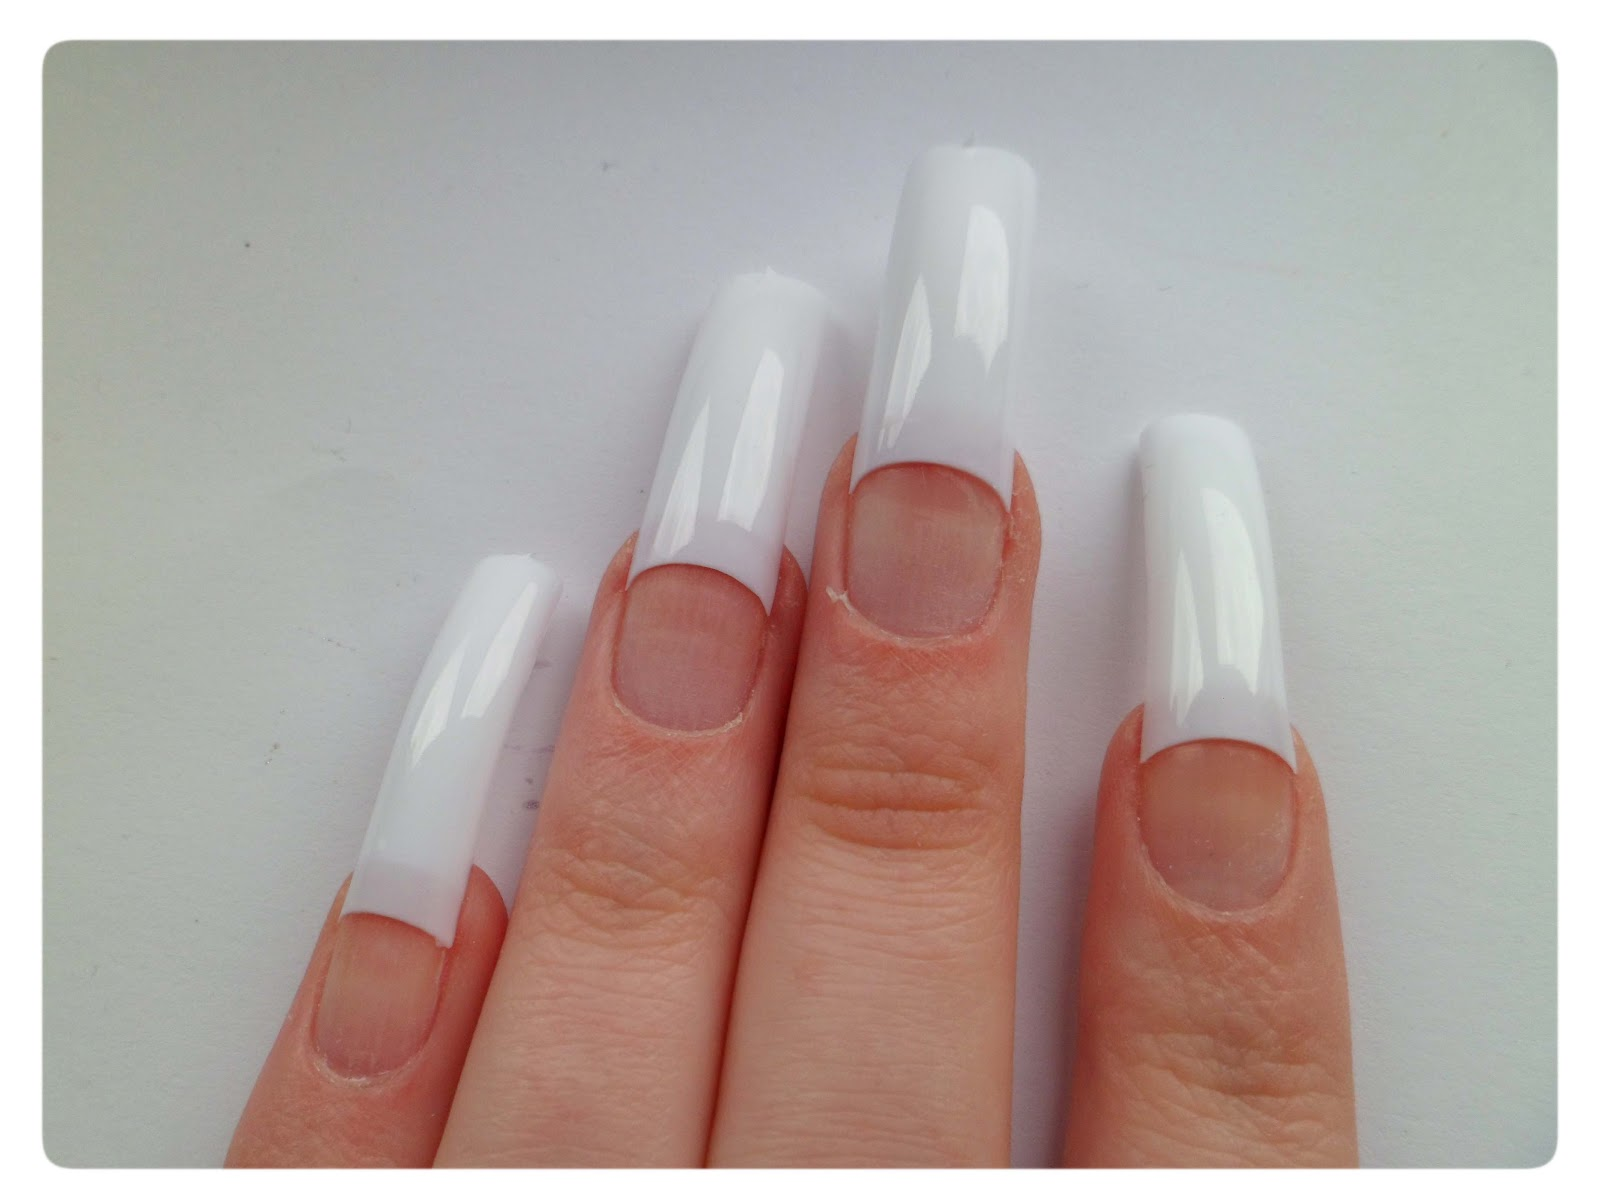 Lauras all made up uk beauty fashion lifestyle blog review lauras all made up uk beauty fashion lifestyle blog review rio quick dip acrylic nail extensions solutioingenieria